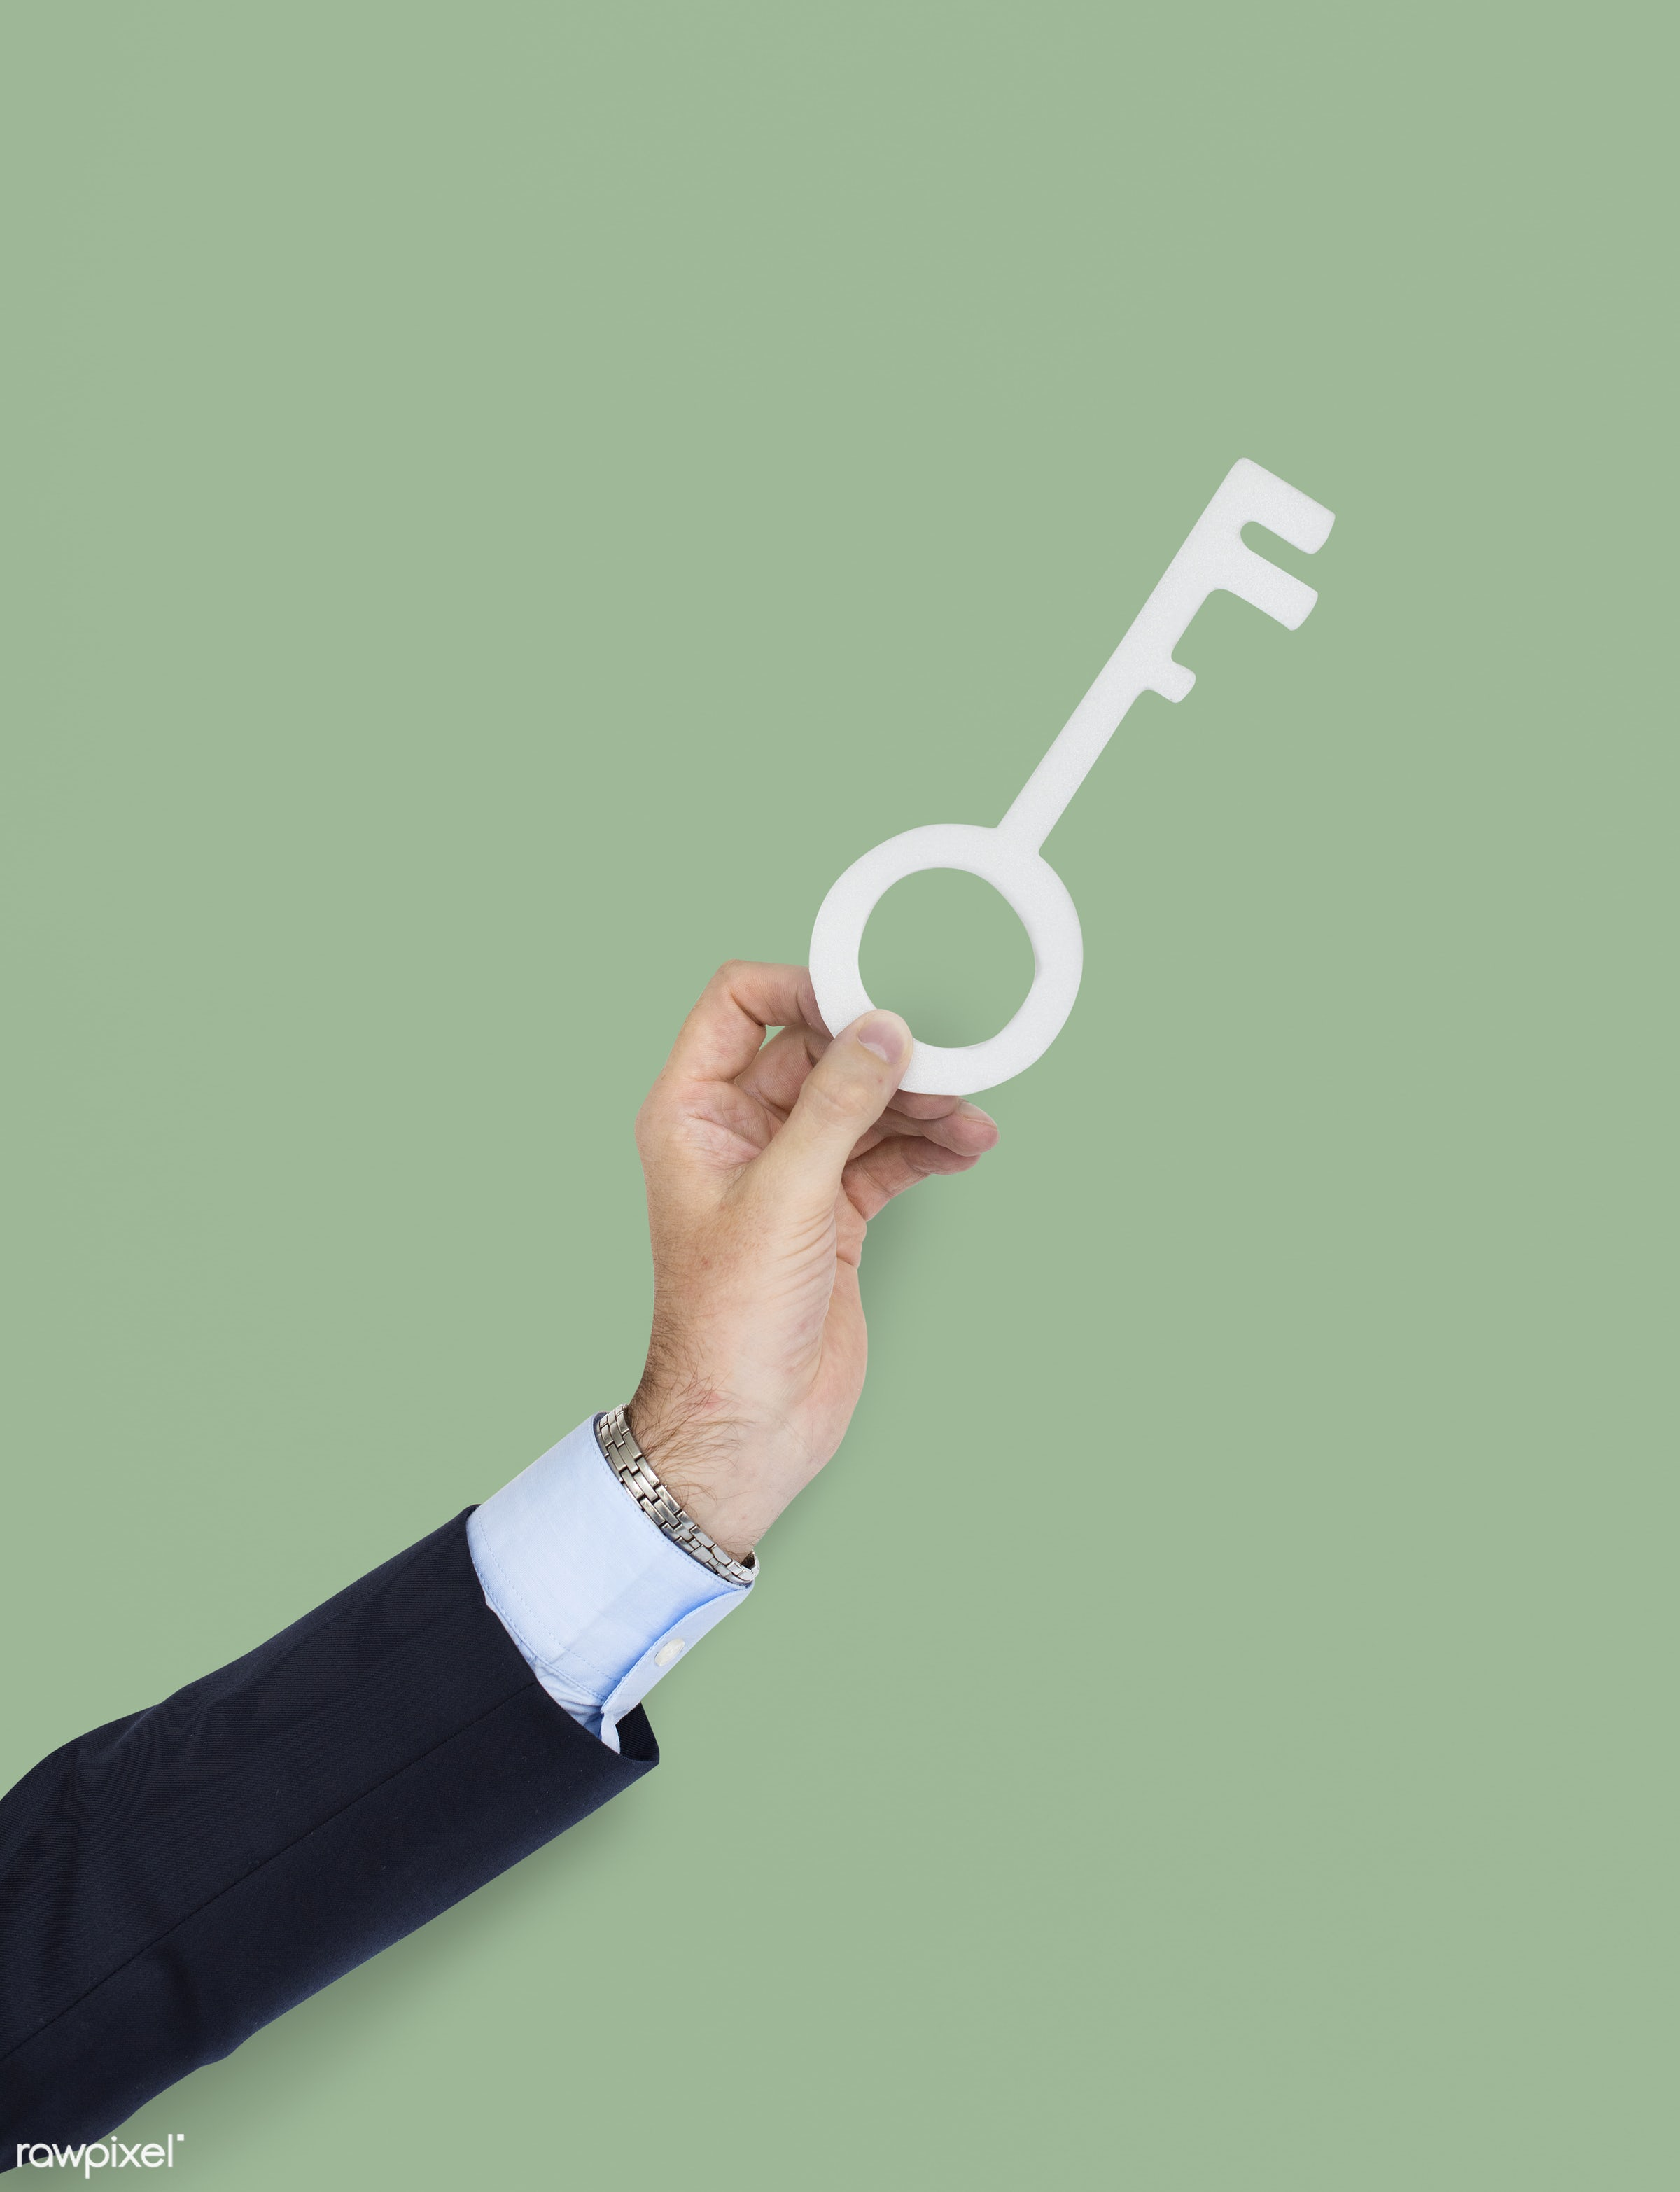 studio, expression, person, knowledge, holding, business wear, achieve, object, people, business, hand, partner, man, key,...